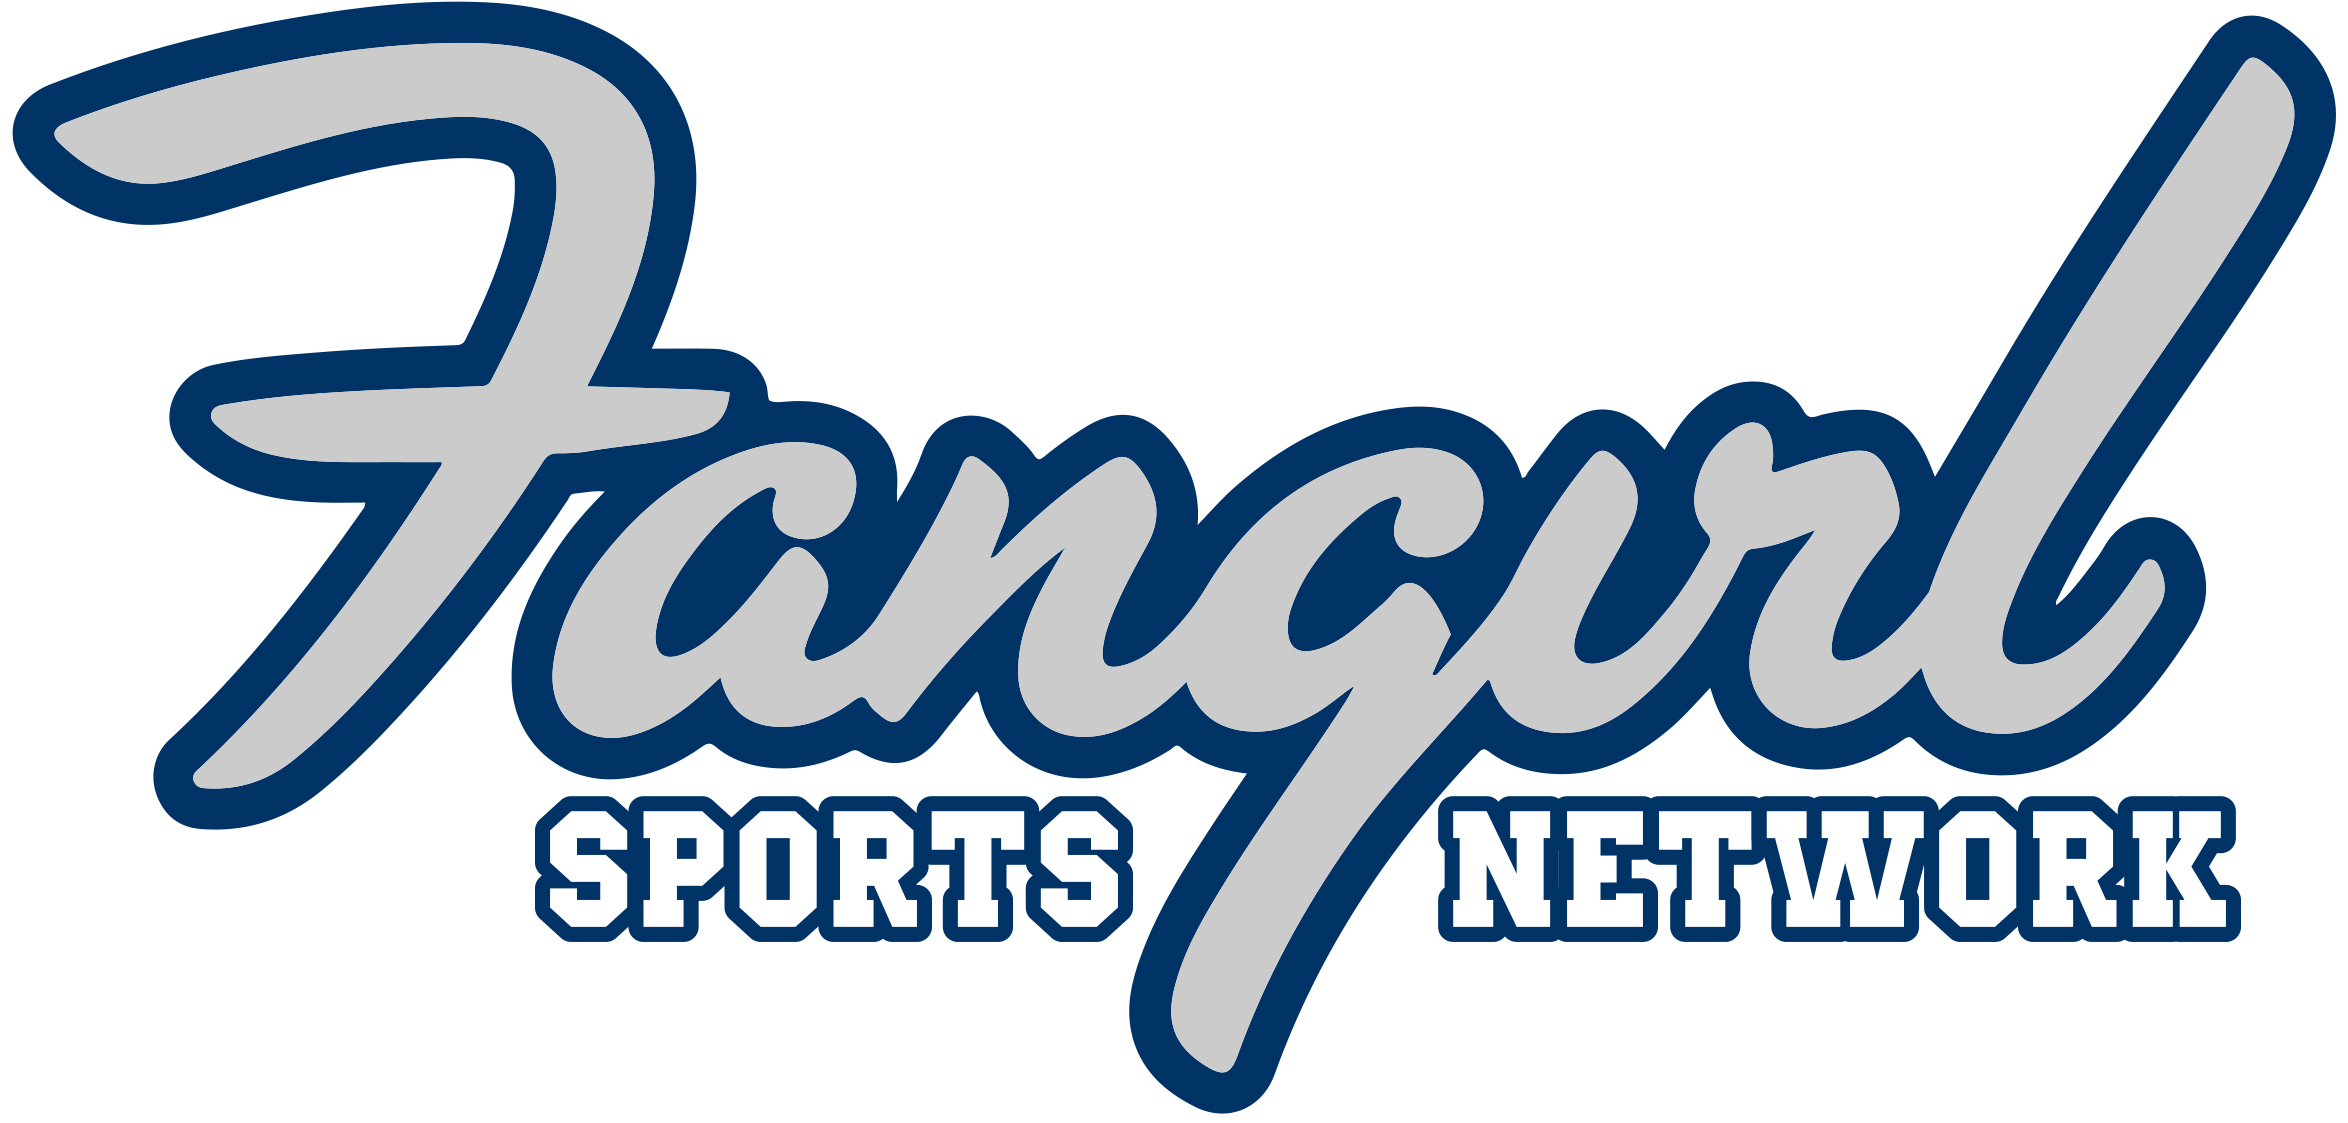 FANGIRL SPORTS NETWORK.jpg